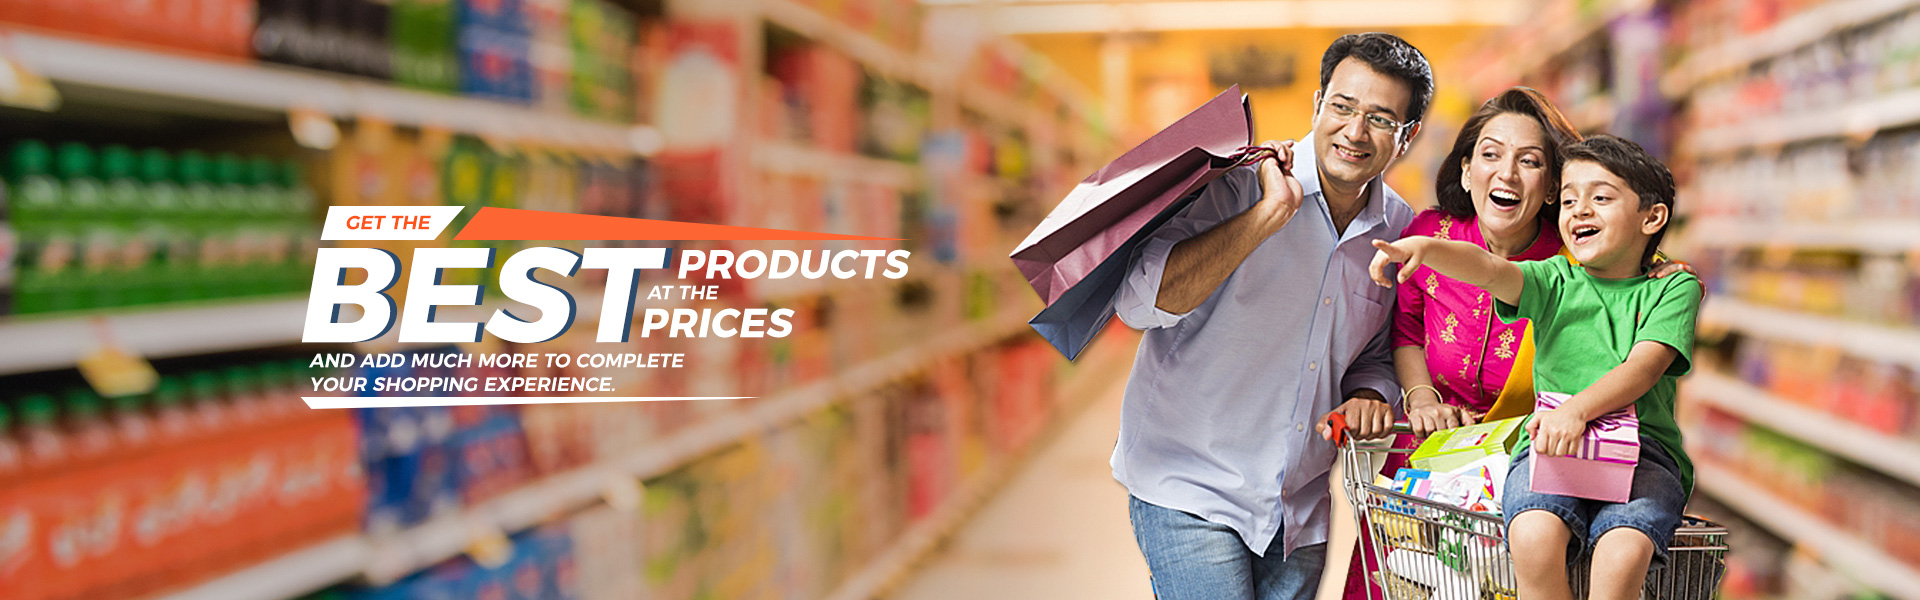 Get the best products at the prices and add much more to complete your shopping experience.